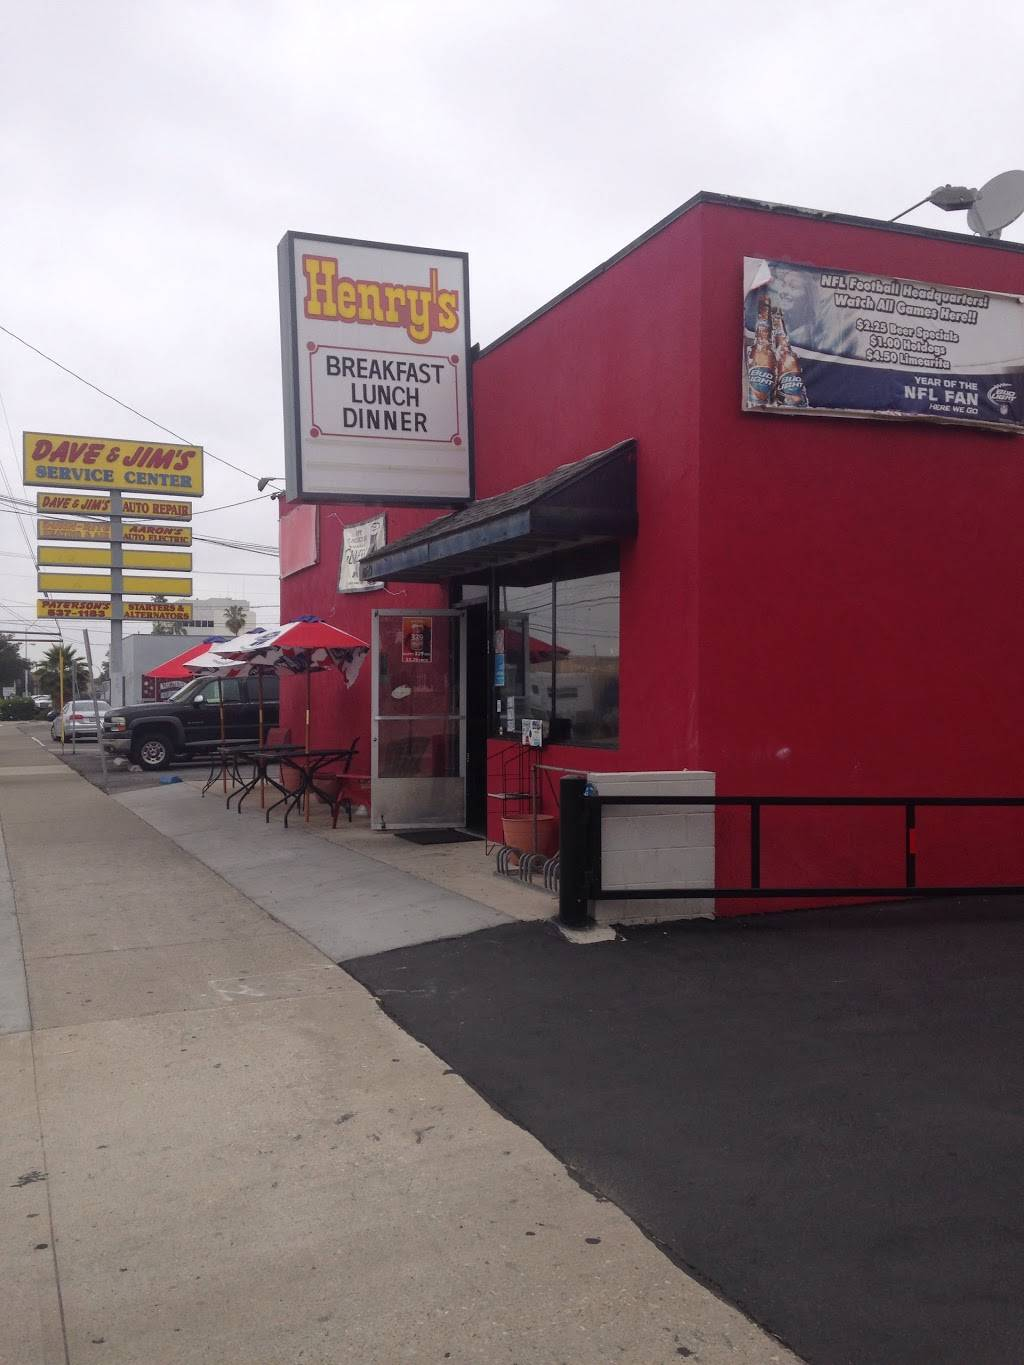 Henrys Bar and Grill | restaurant | 10549 Stanford Ave, Garden Grove, CA 92840, USA | 7145379884 OR +1 714-537-9884